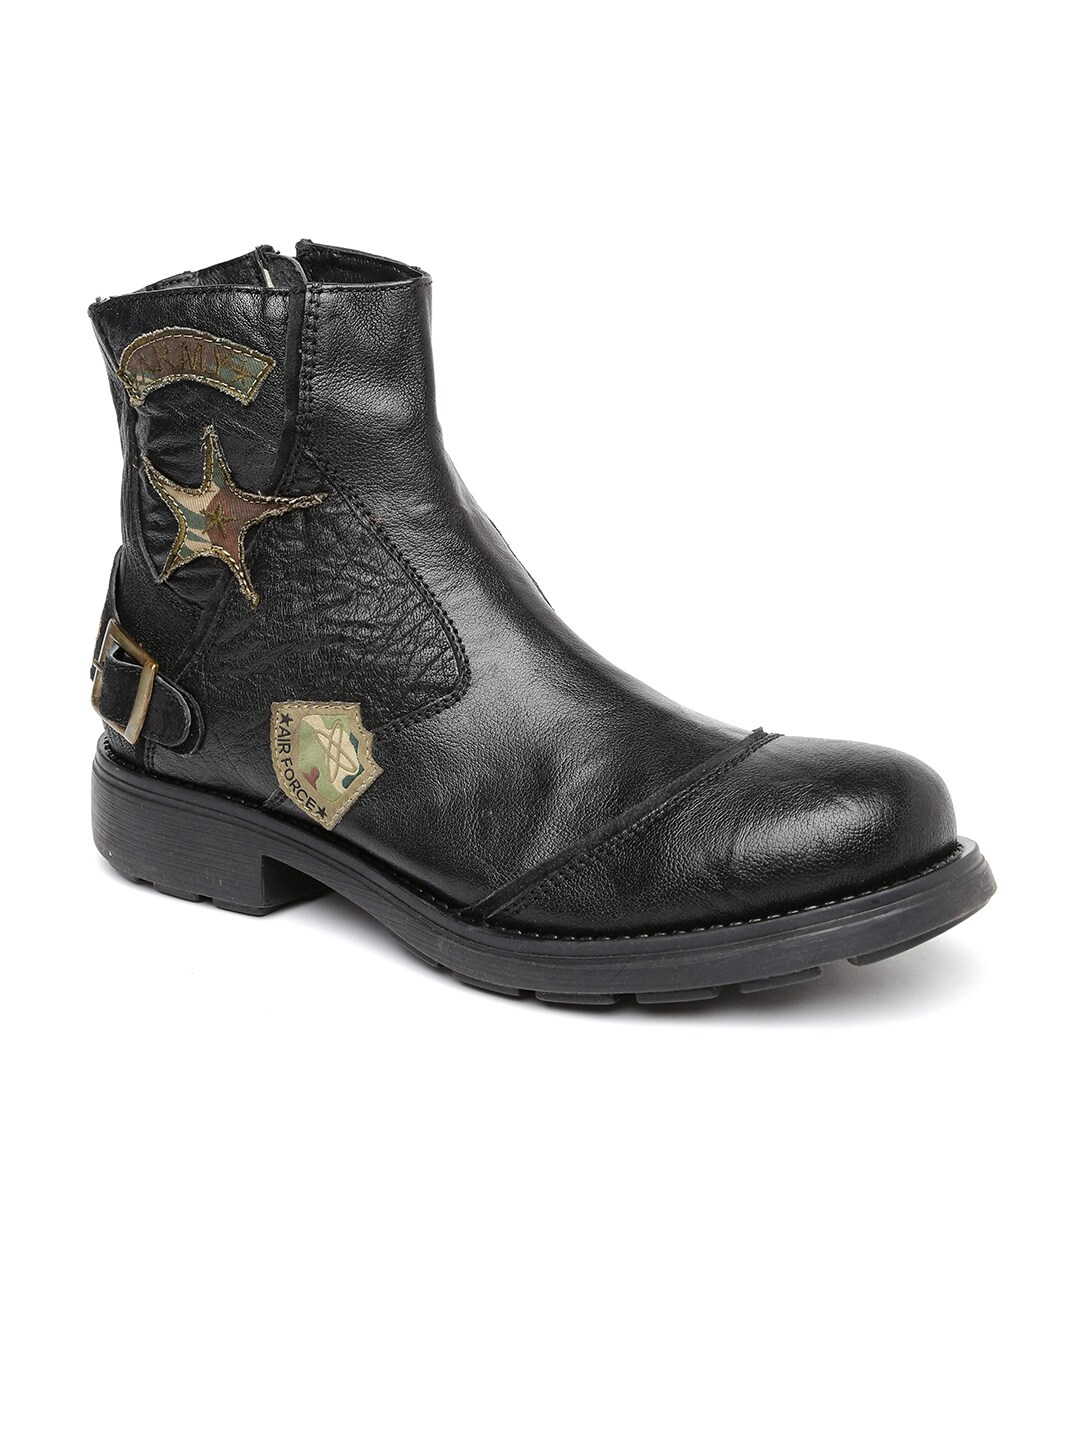 Buckaroo Men Black Leather Boots image